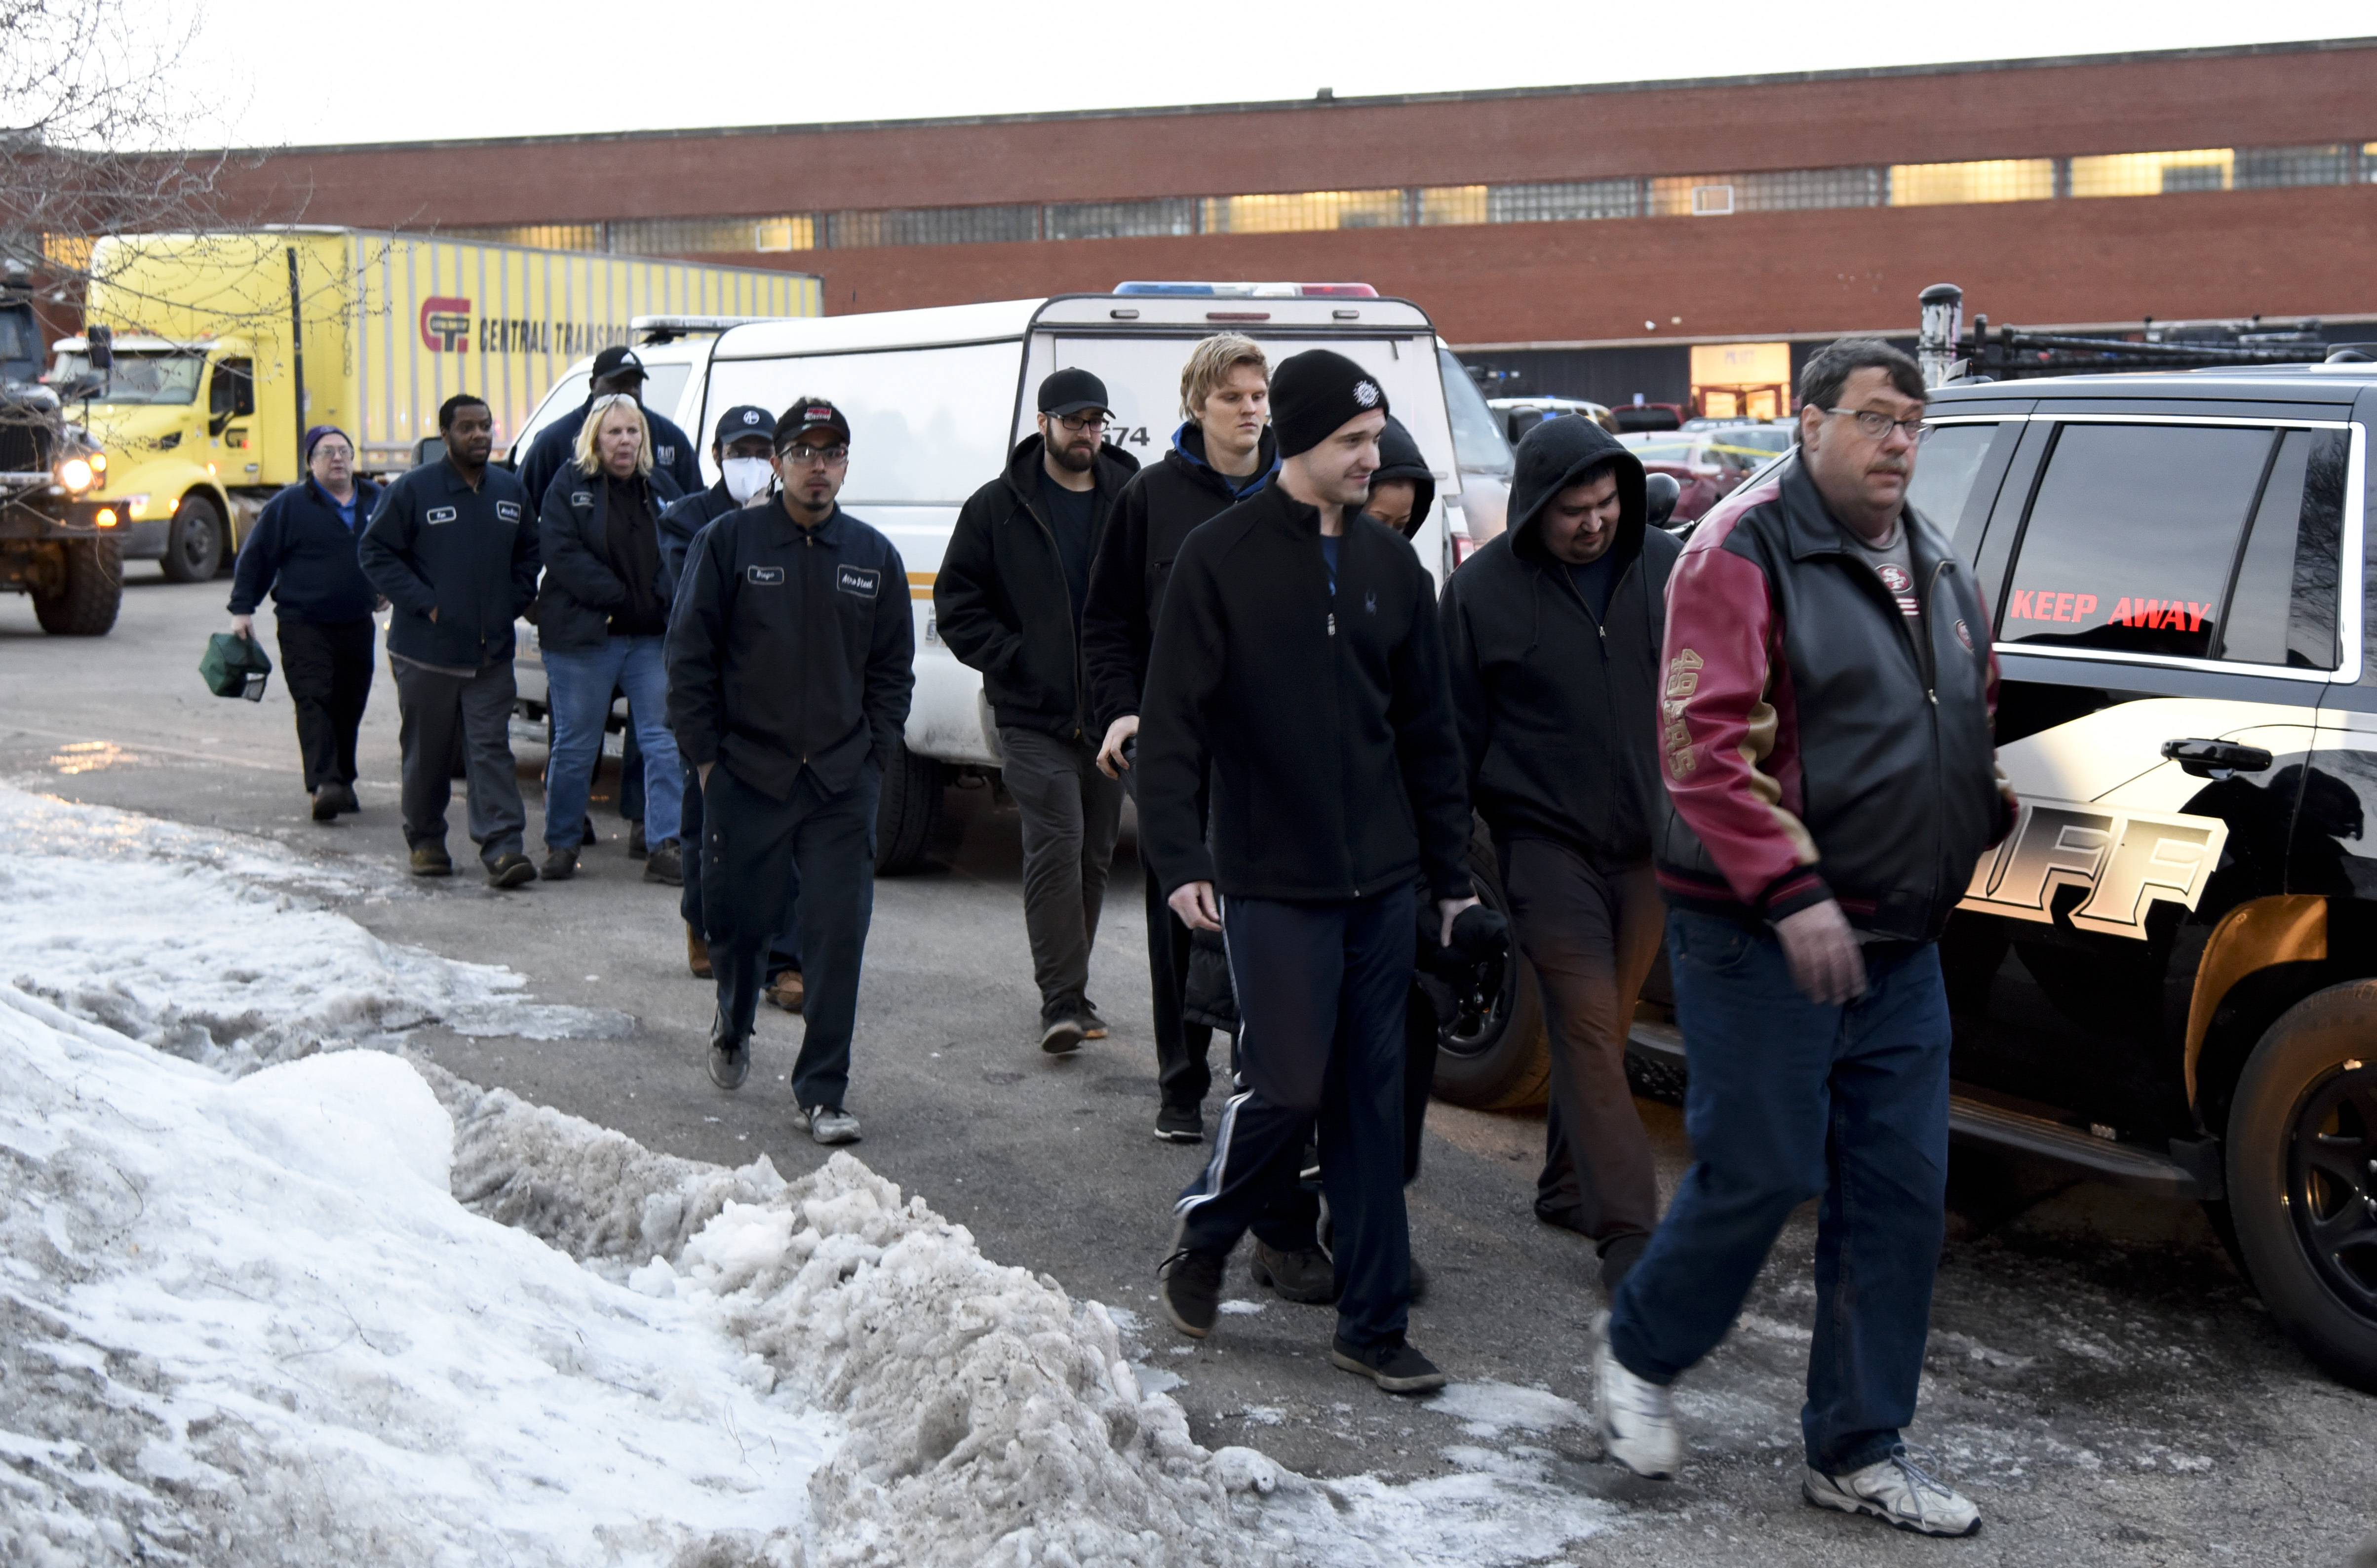 Employees are escorted from the scene of Friday's mass shooting at the Henry Pratt warehouse in Aurora.